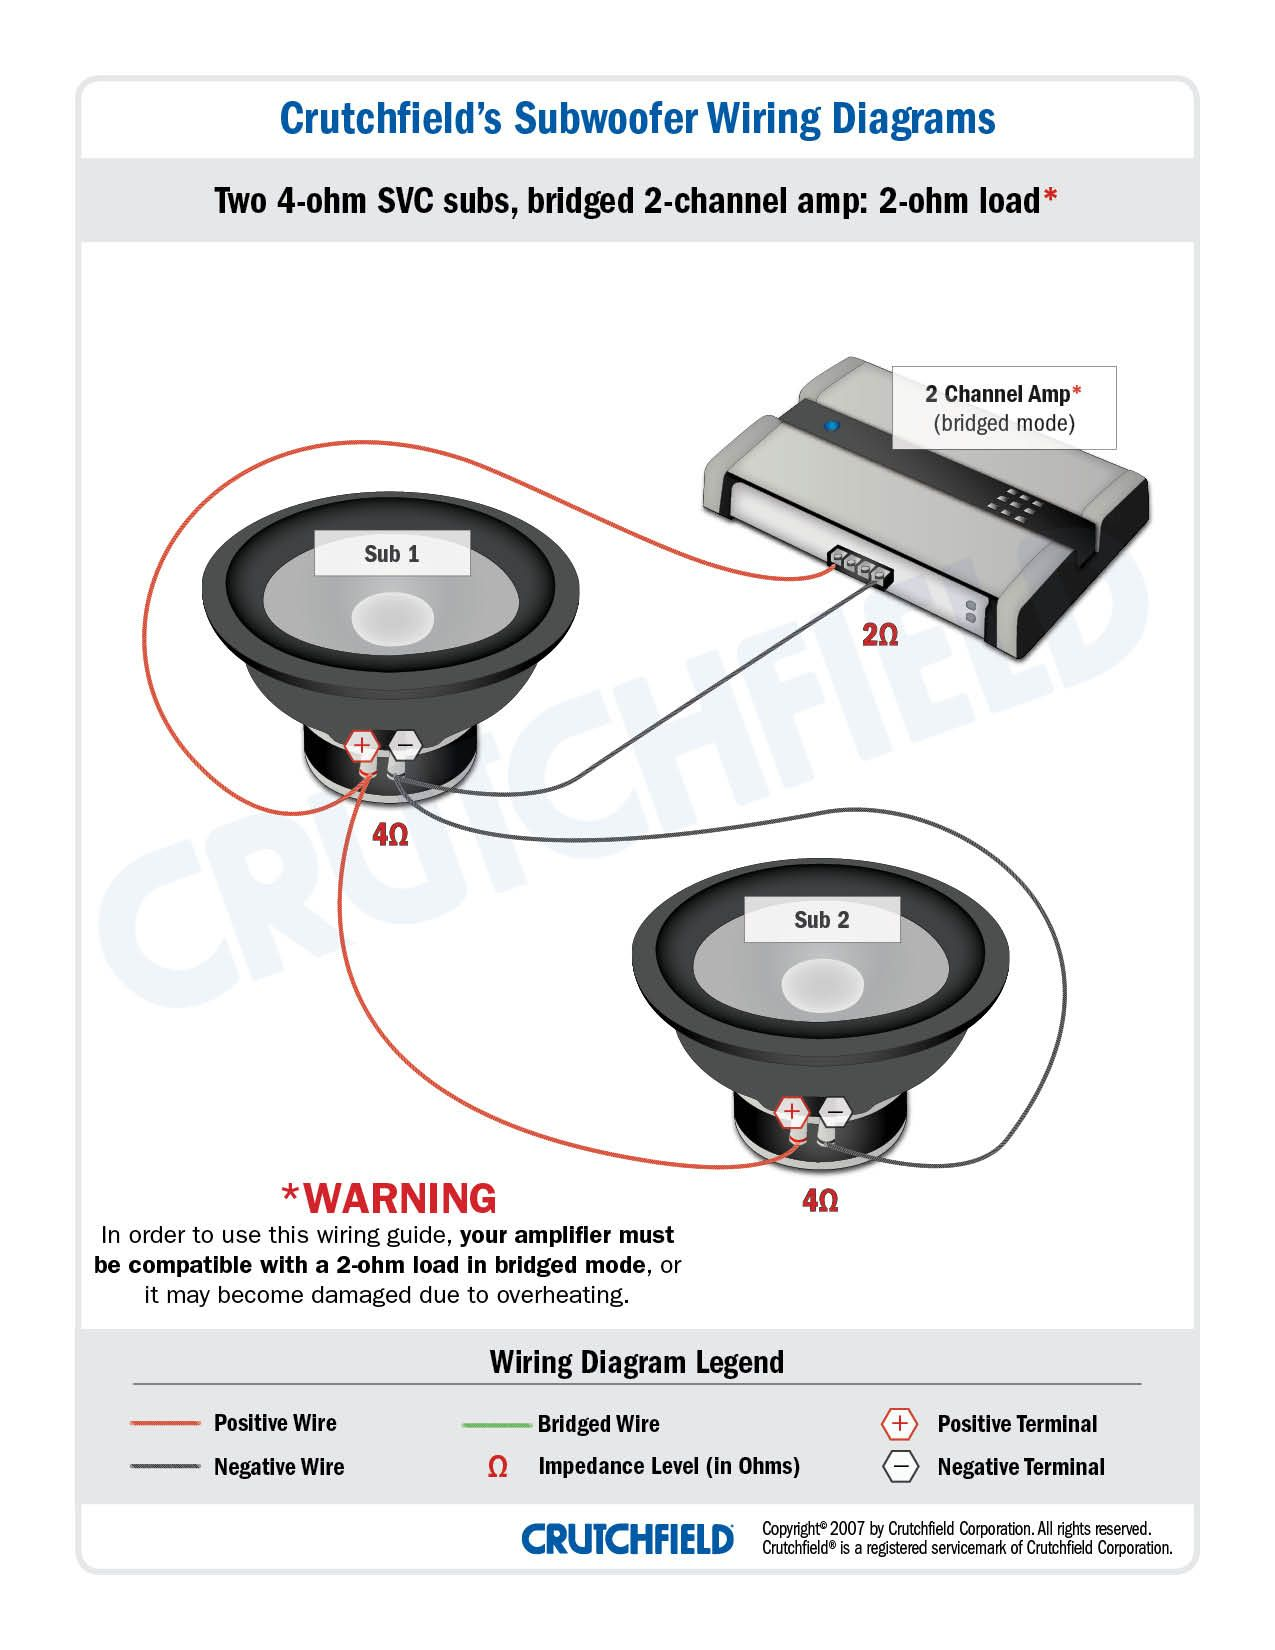 Subwoofer Wiring Diagrams How To Wire Your Subs Subwoofer Wiring Subwoofer Car Audio